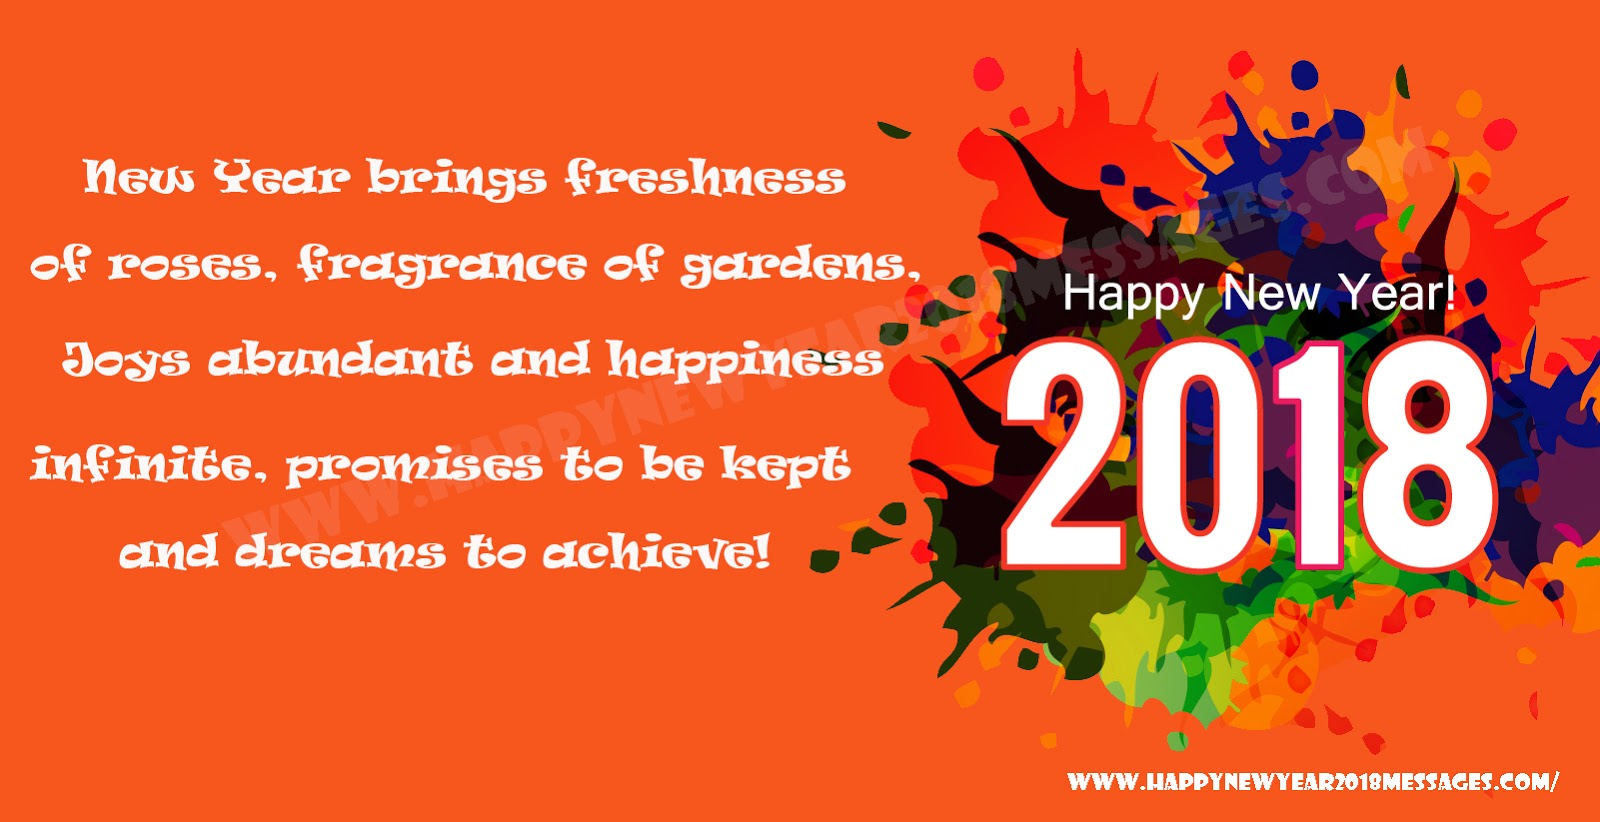 Happy new year 2018 best new year whatsapp facebook messages sms happy new year 2018 best new year whatsapp facebook messages sms to send happy new year greetings m4hsunfo